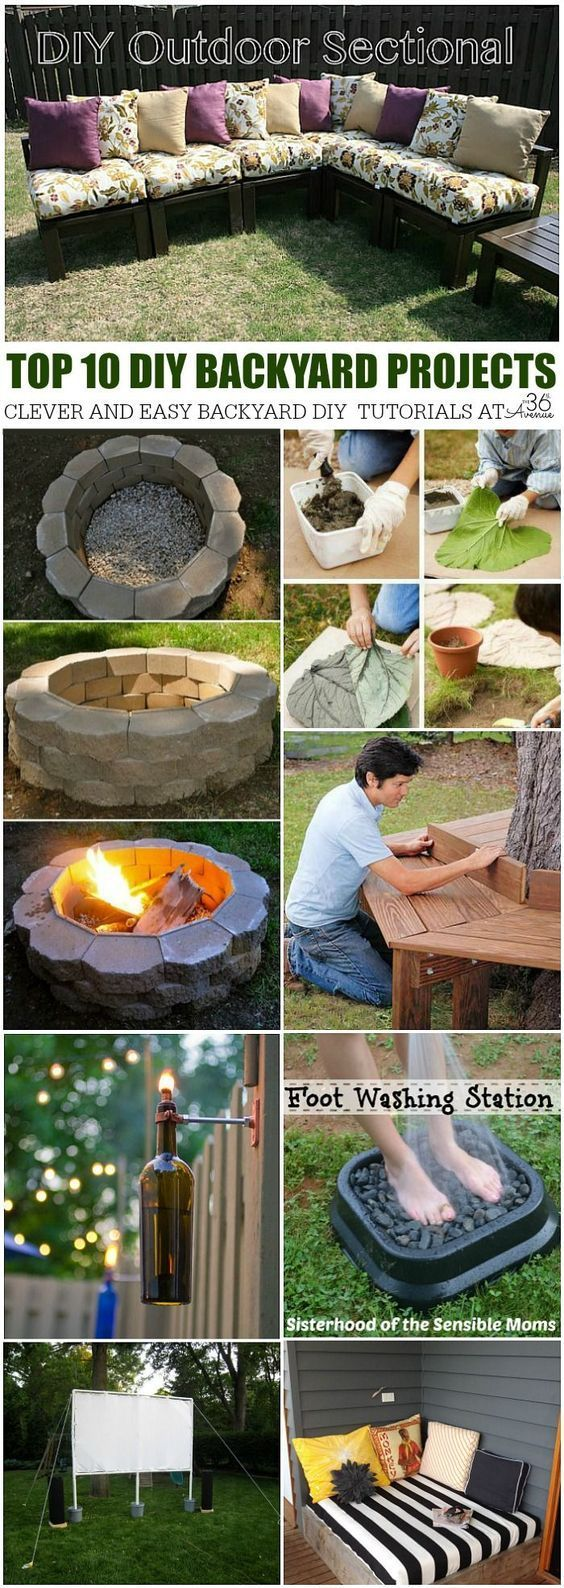 Patio Swing Replacement Seat: 26 Best Patio Swing With Canopy Images On Pinterest